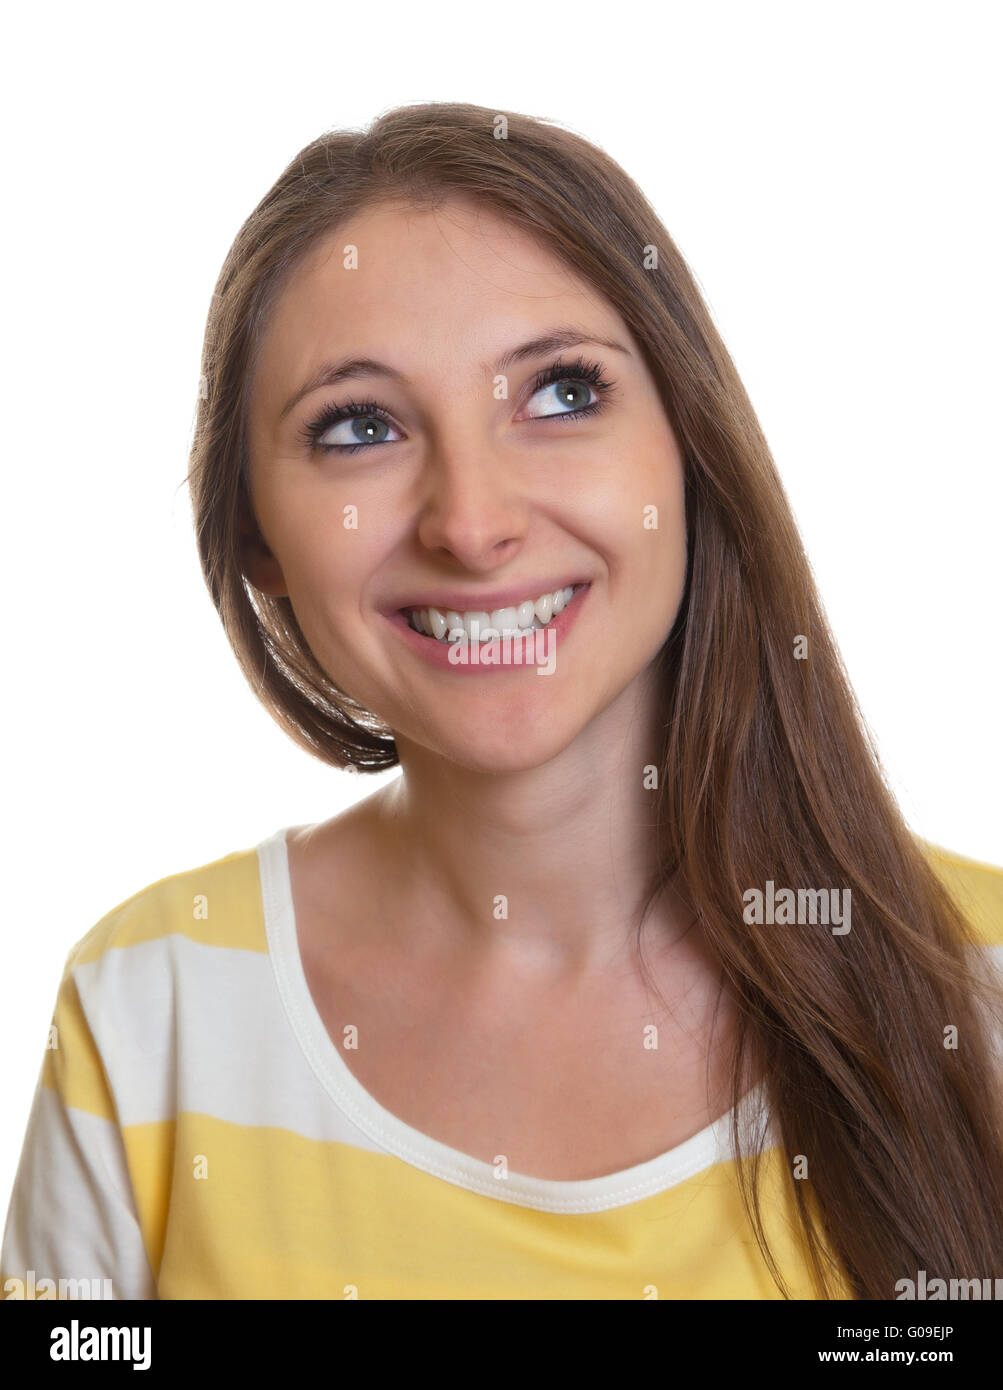 Portrait of a laughing woman with long brown hair - Stock Image